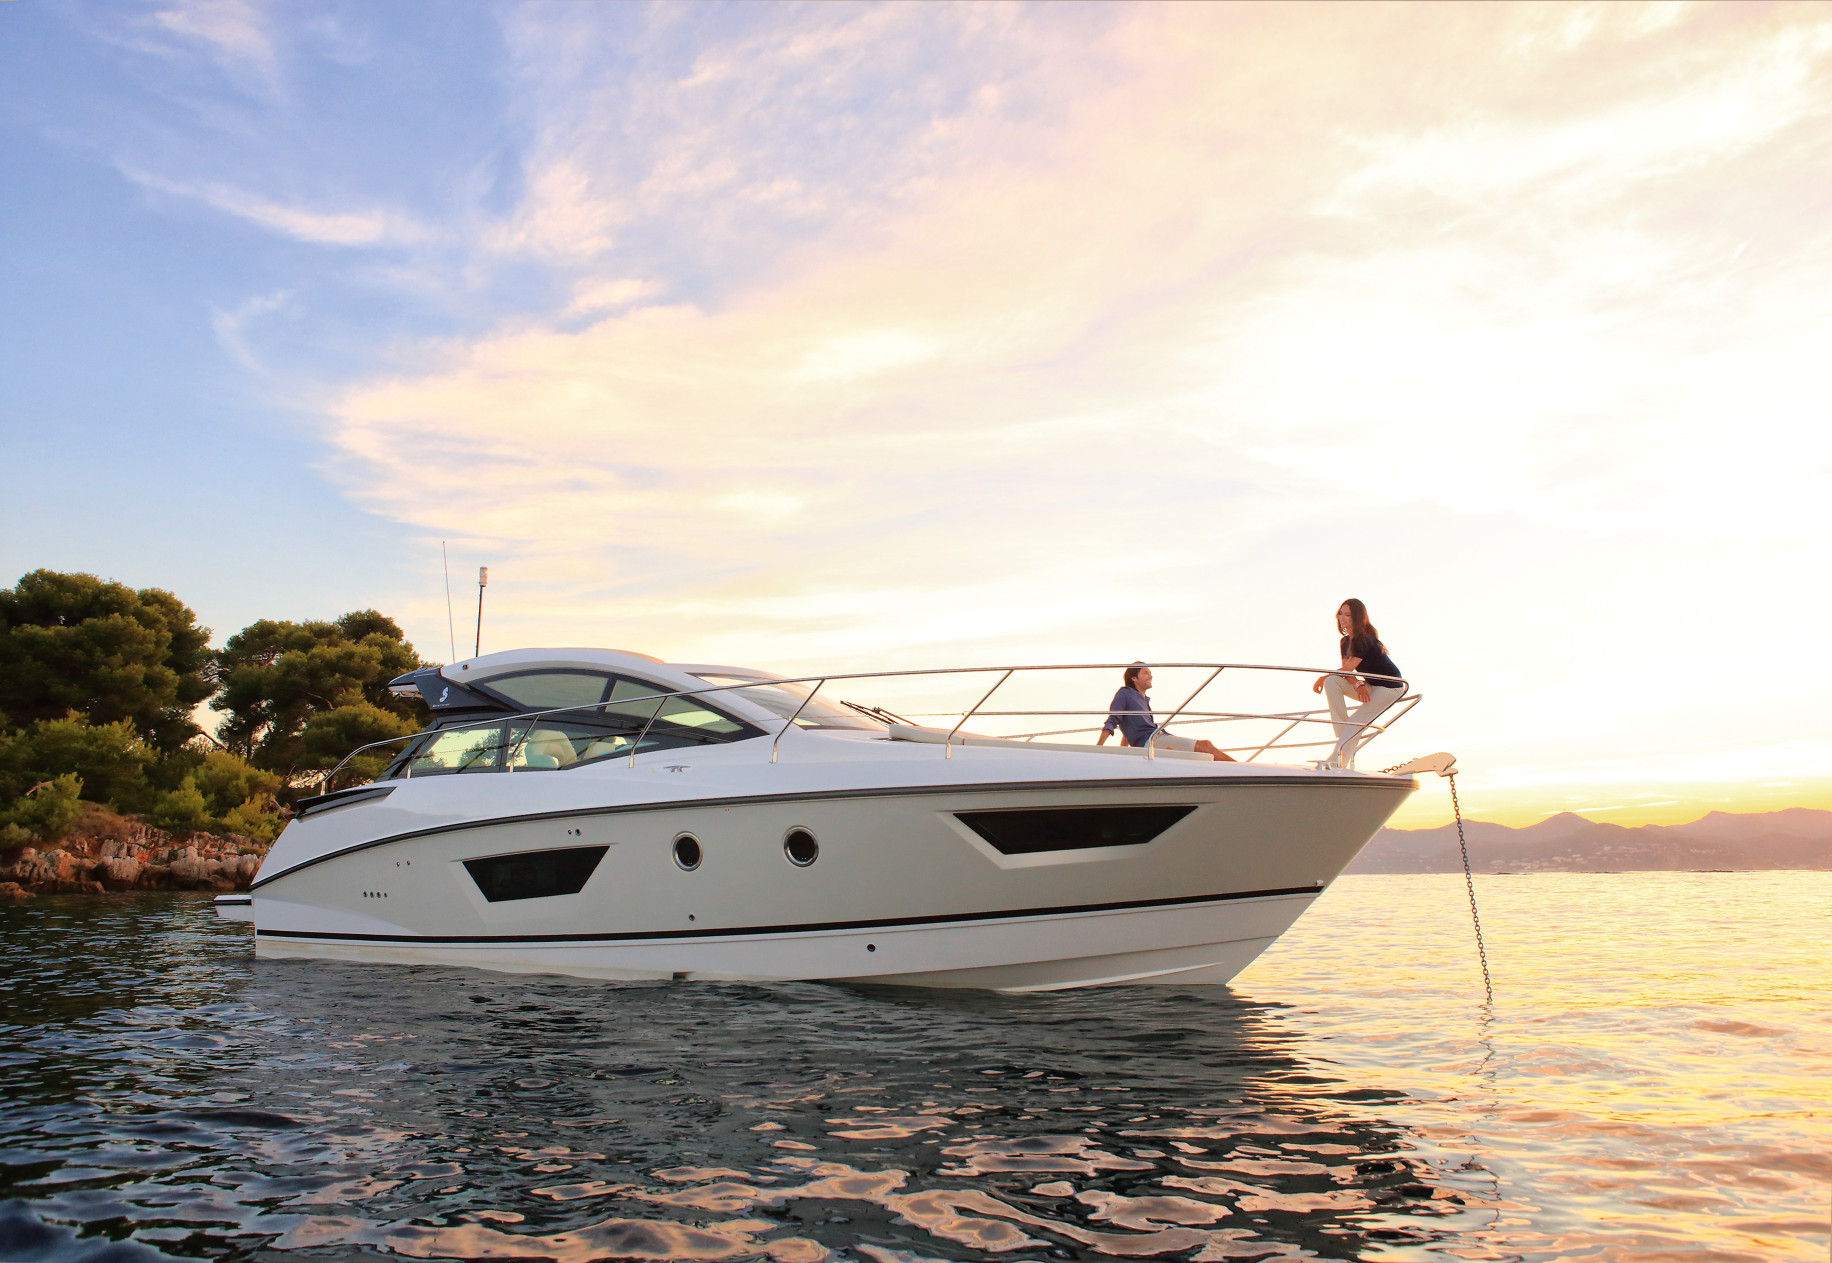 Motor yacht charter boats under 50ft/15m  | CHARTERWORLD